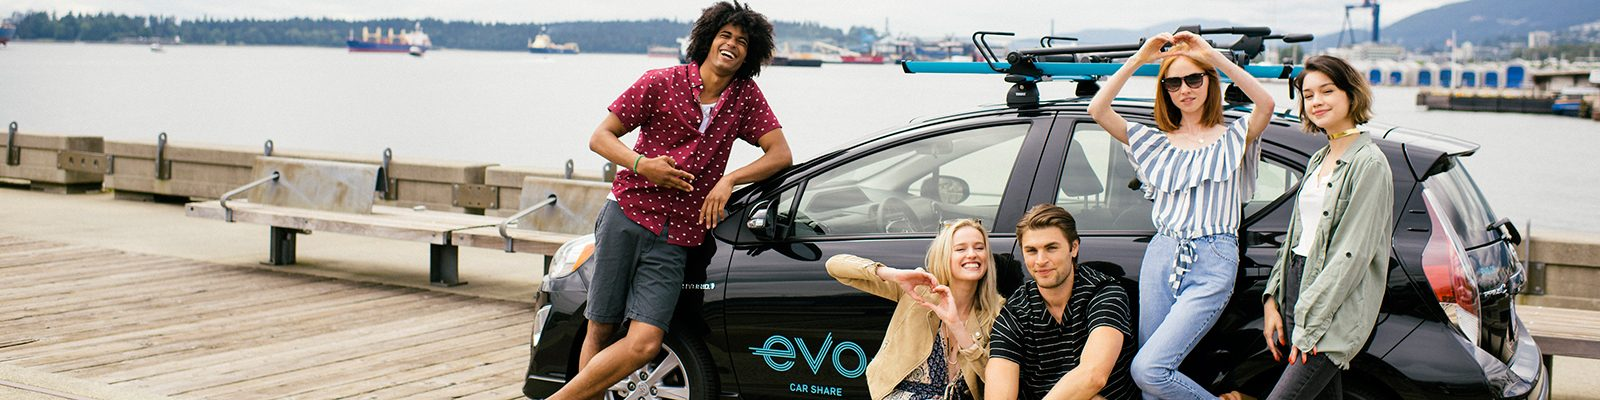 Evo promo code - Evo car share